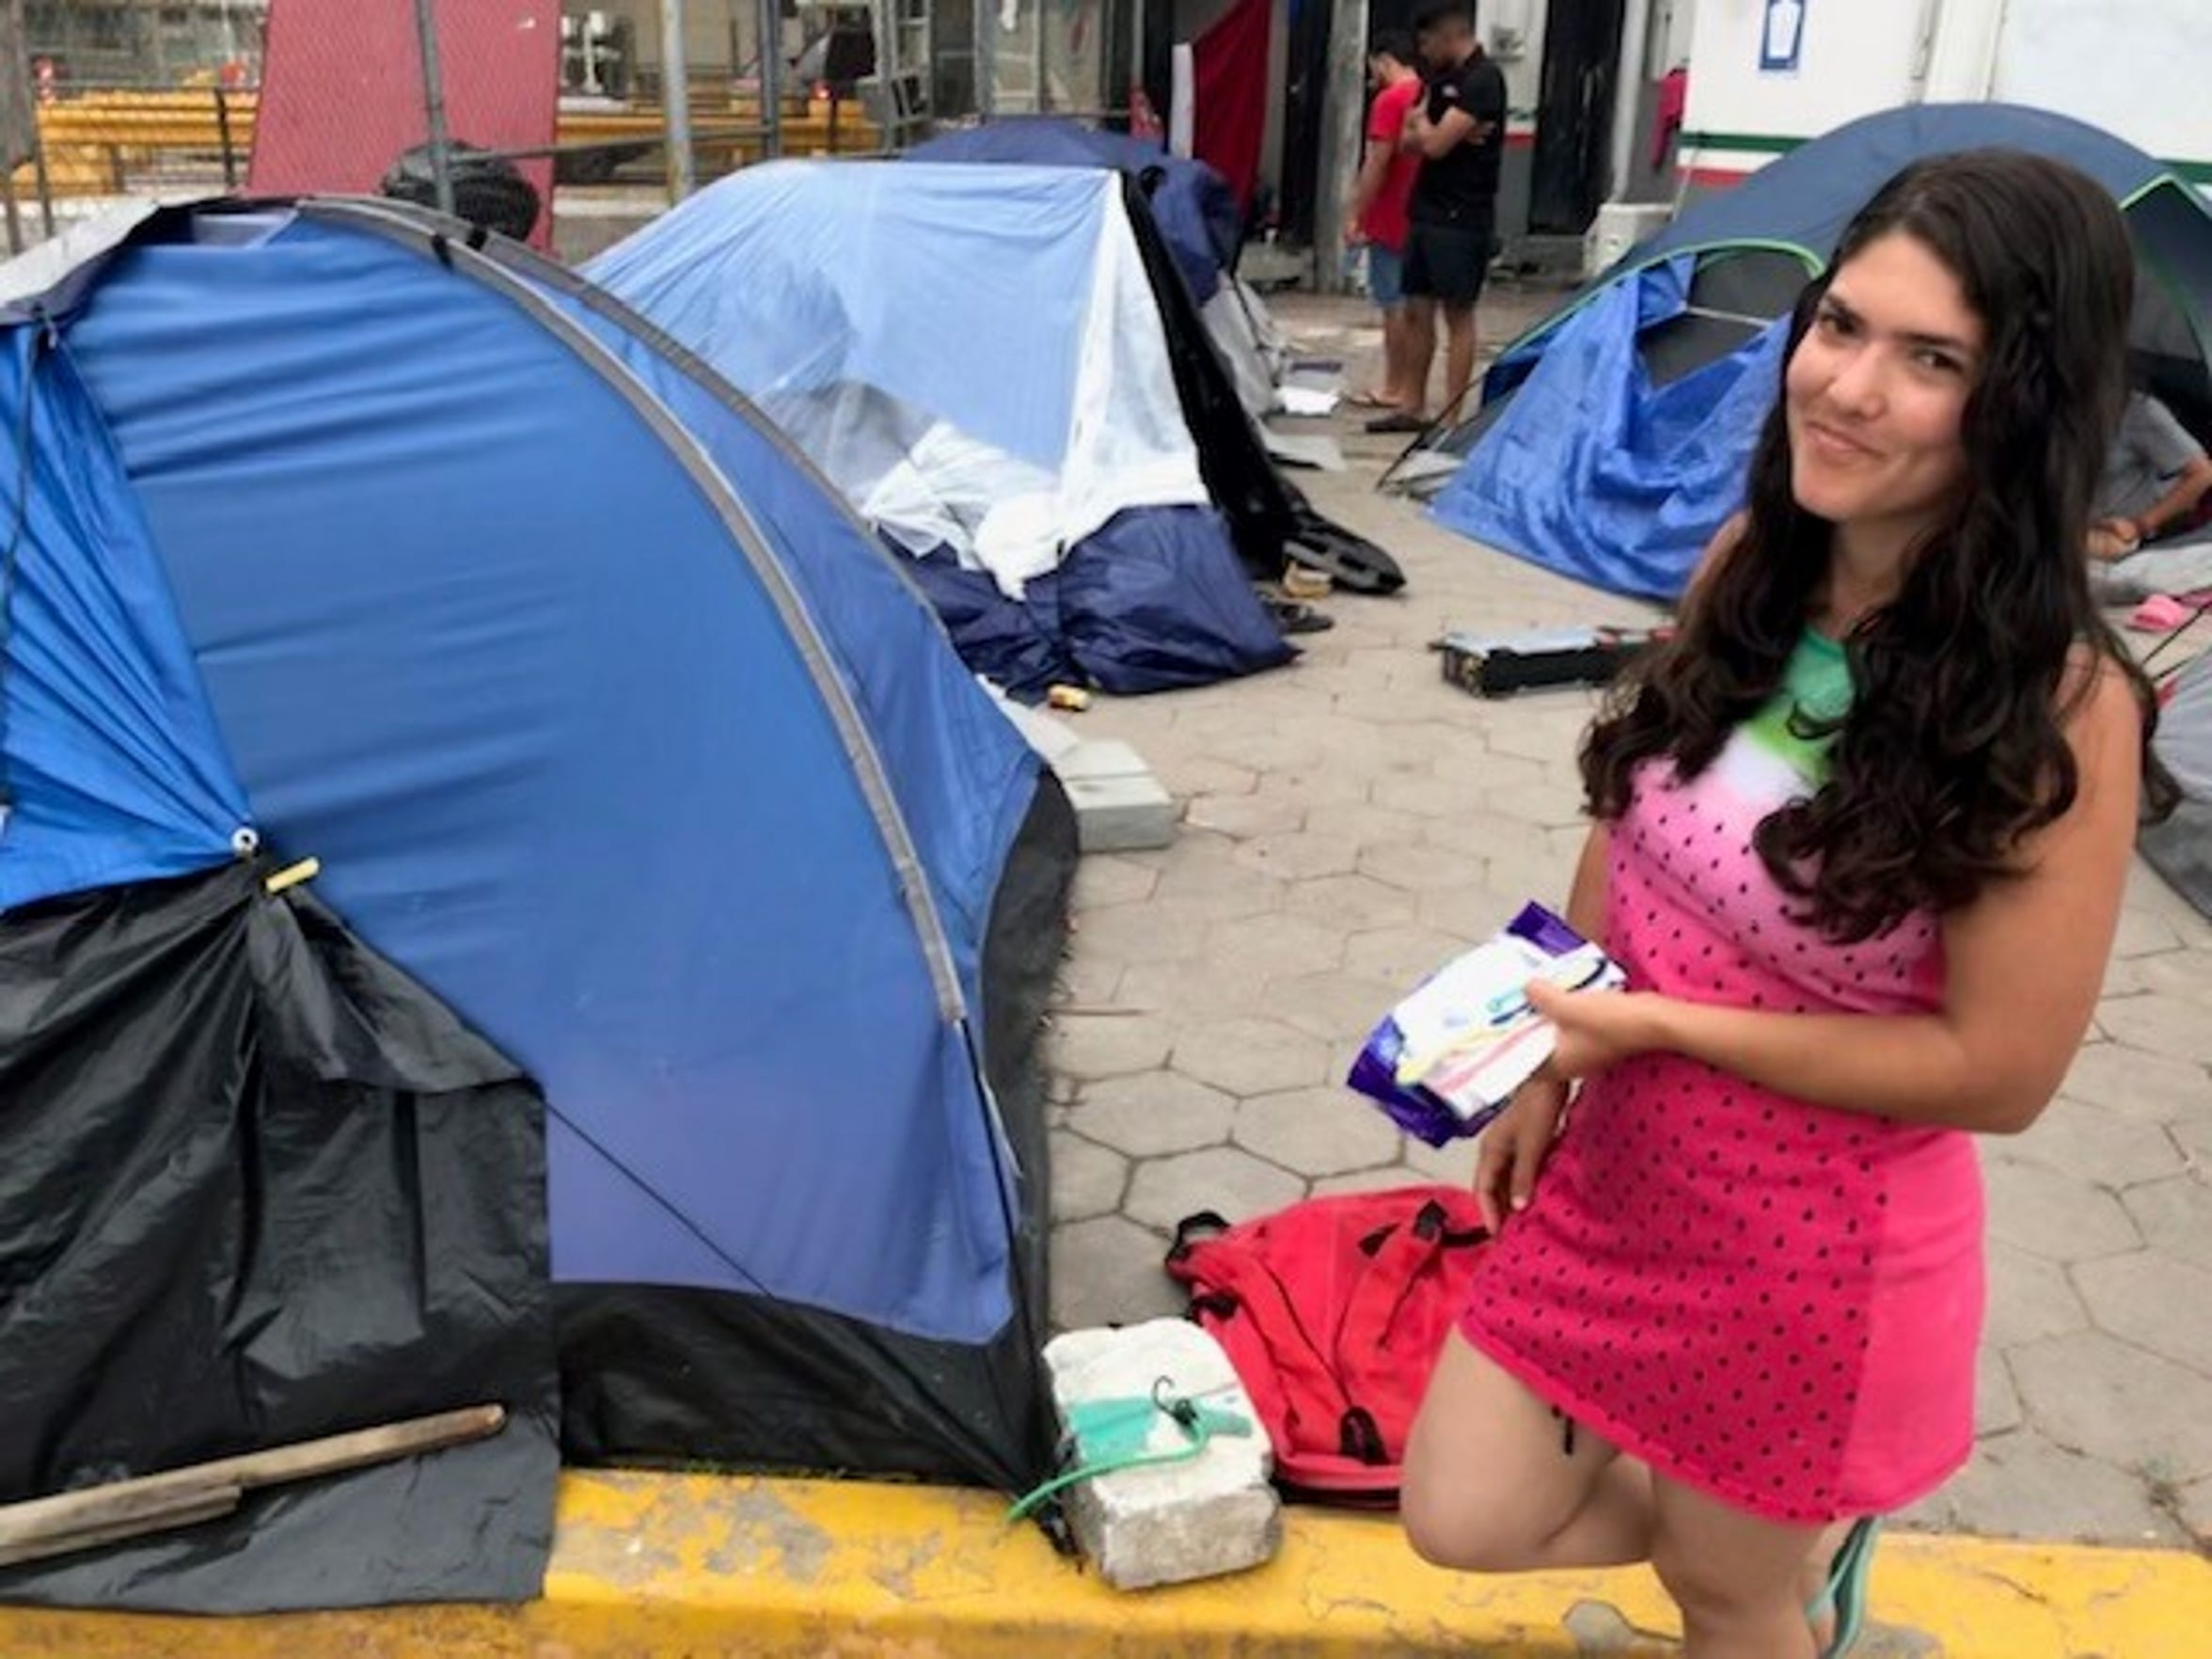 Sol Herrera migrated from Venezuela to seek asylum in the United States. She is at the tent she calls home near the International Gateway Bridge in Matamoros, Mexico, on April 5, 2019.